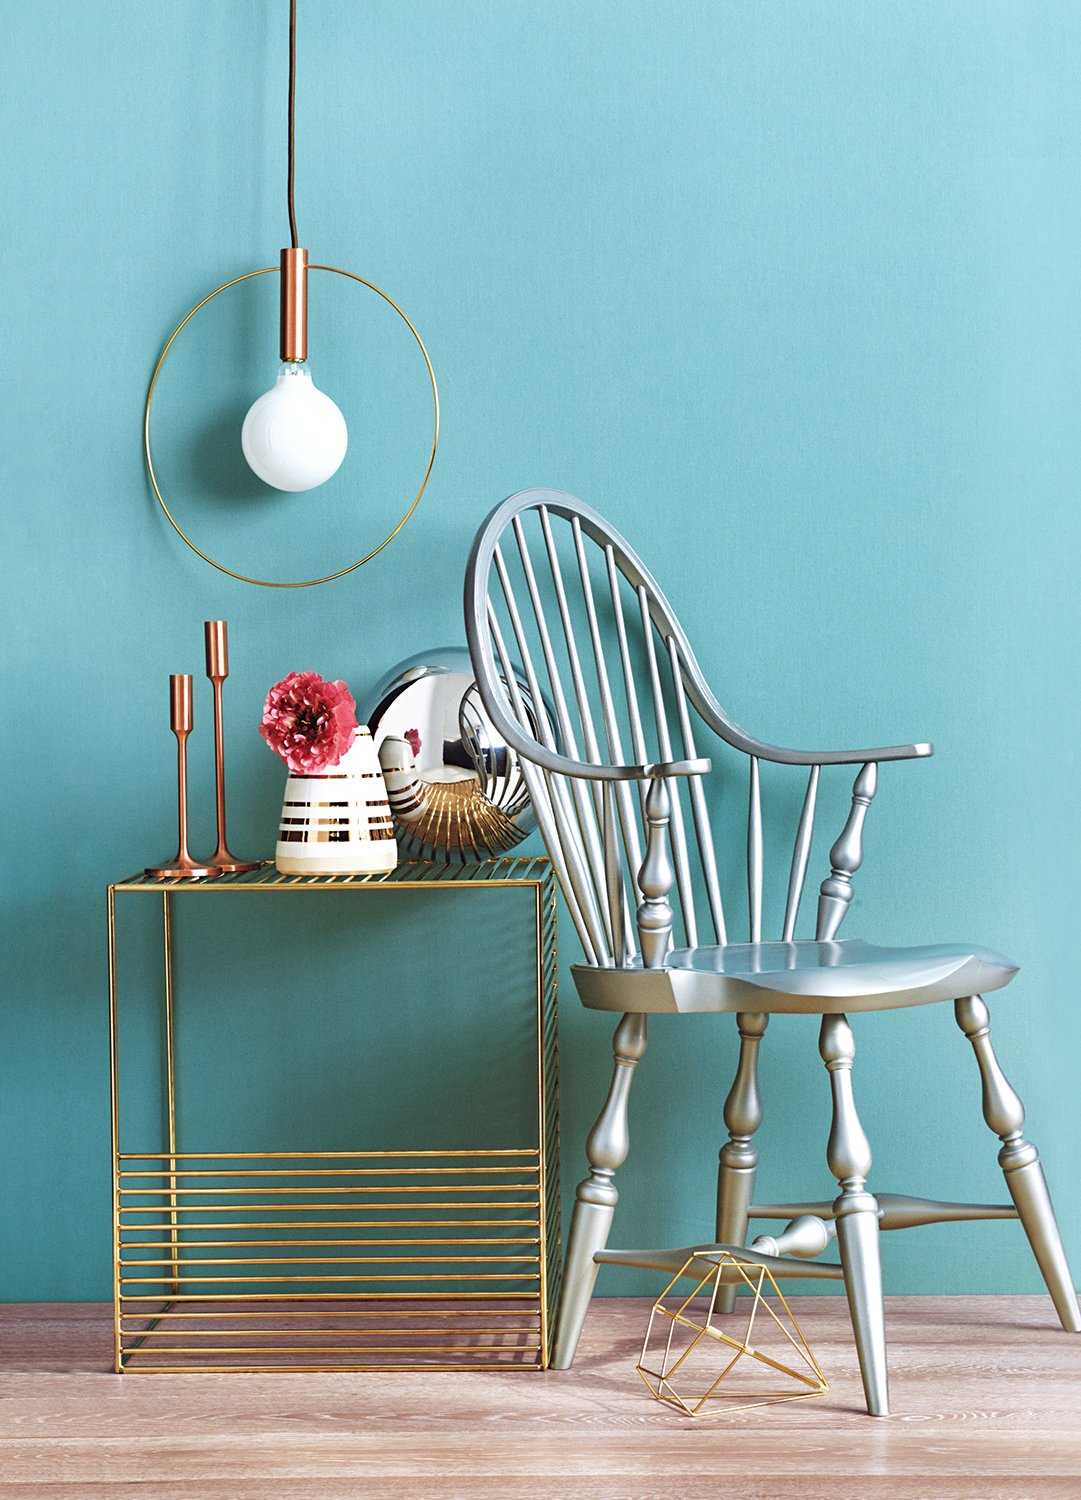 Silver and gold furniture with blue wall